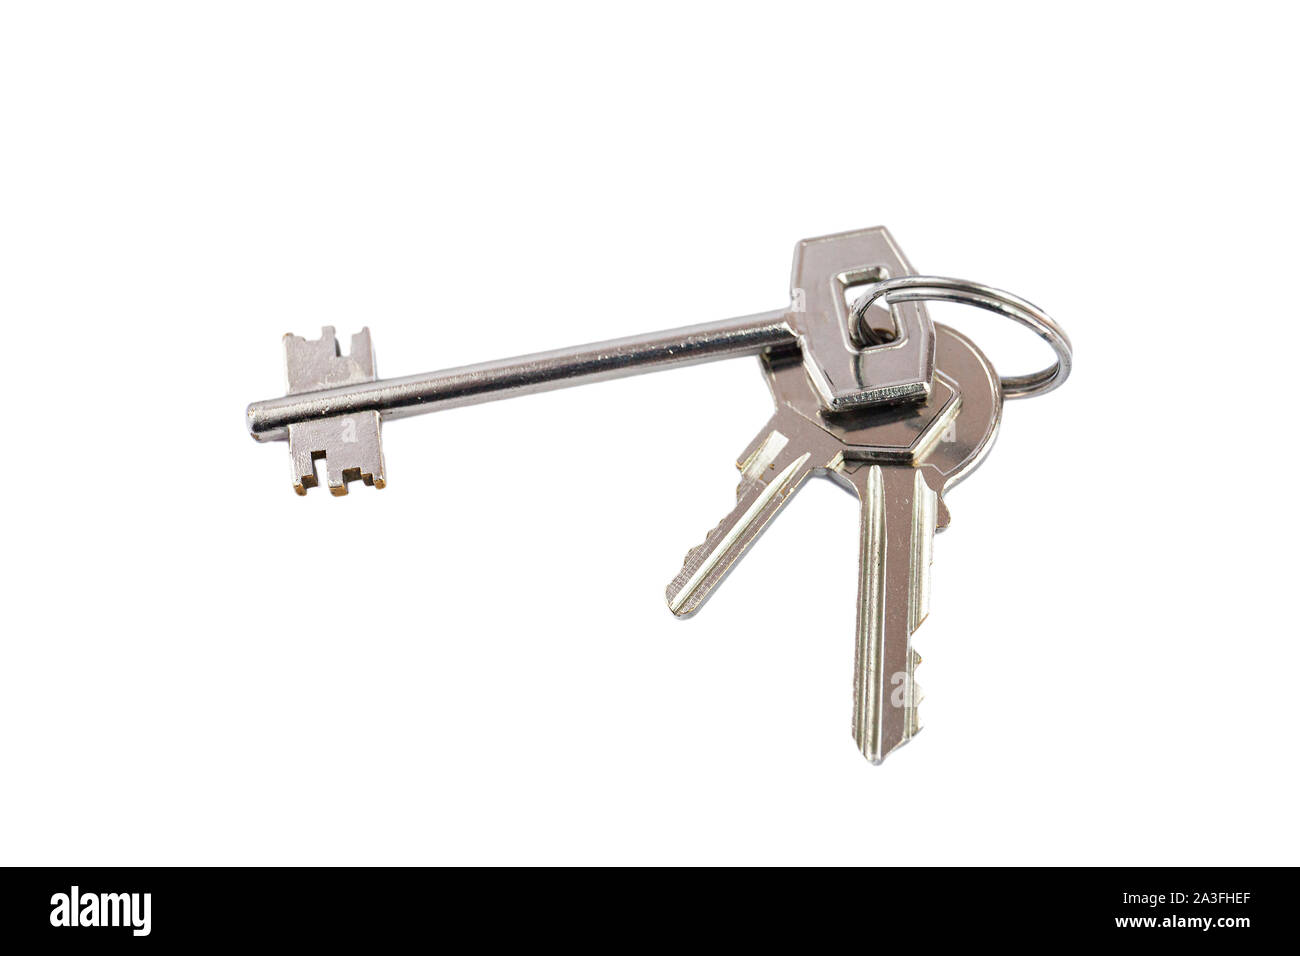 Bunch of keys with metal ring on white background Stock Photo